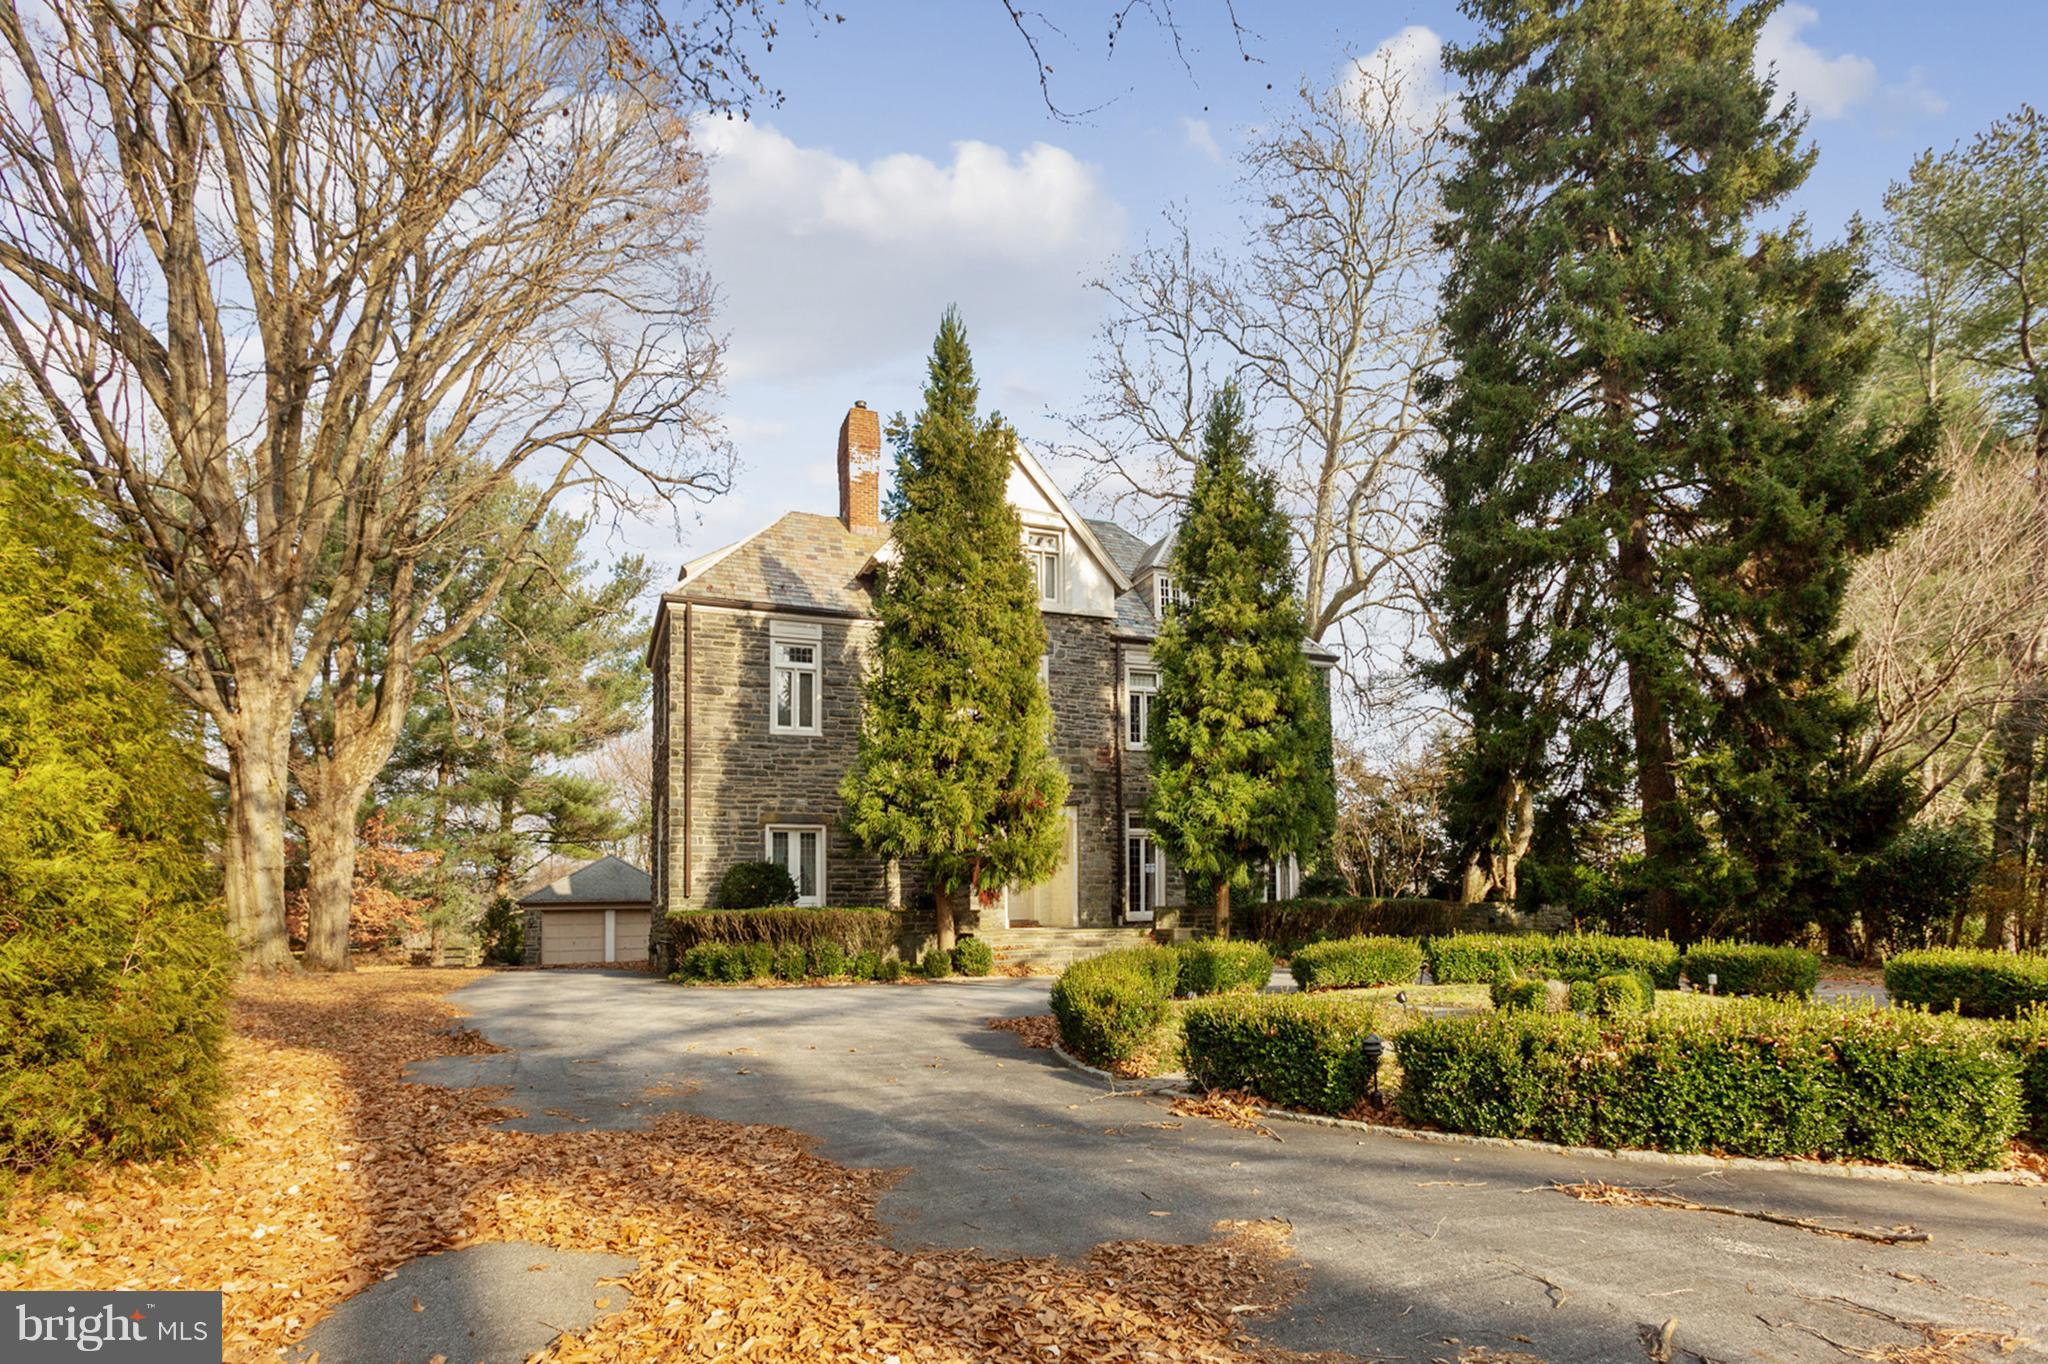 511 Waldron Park Dr, Lower Merion, PA, 19041